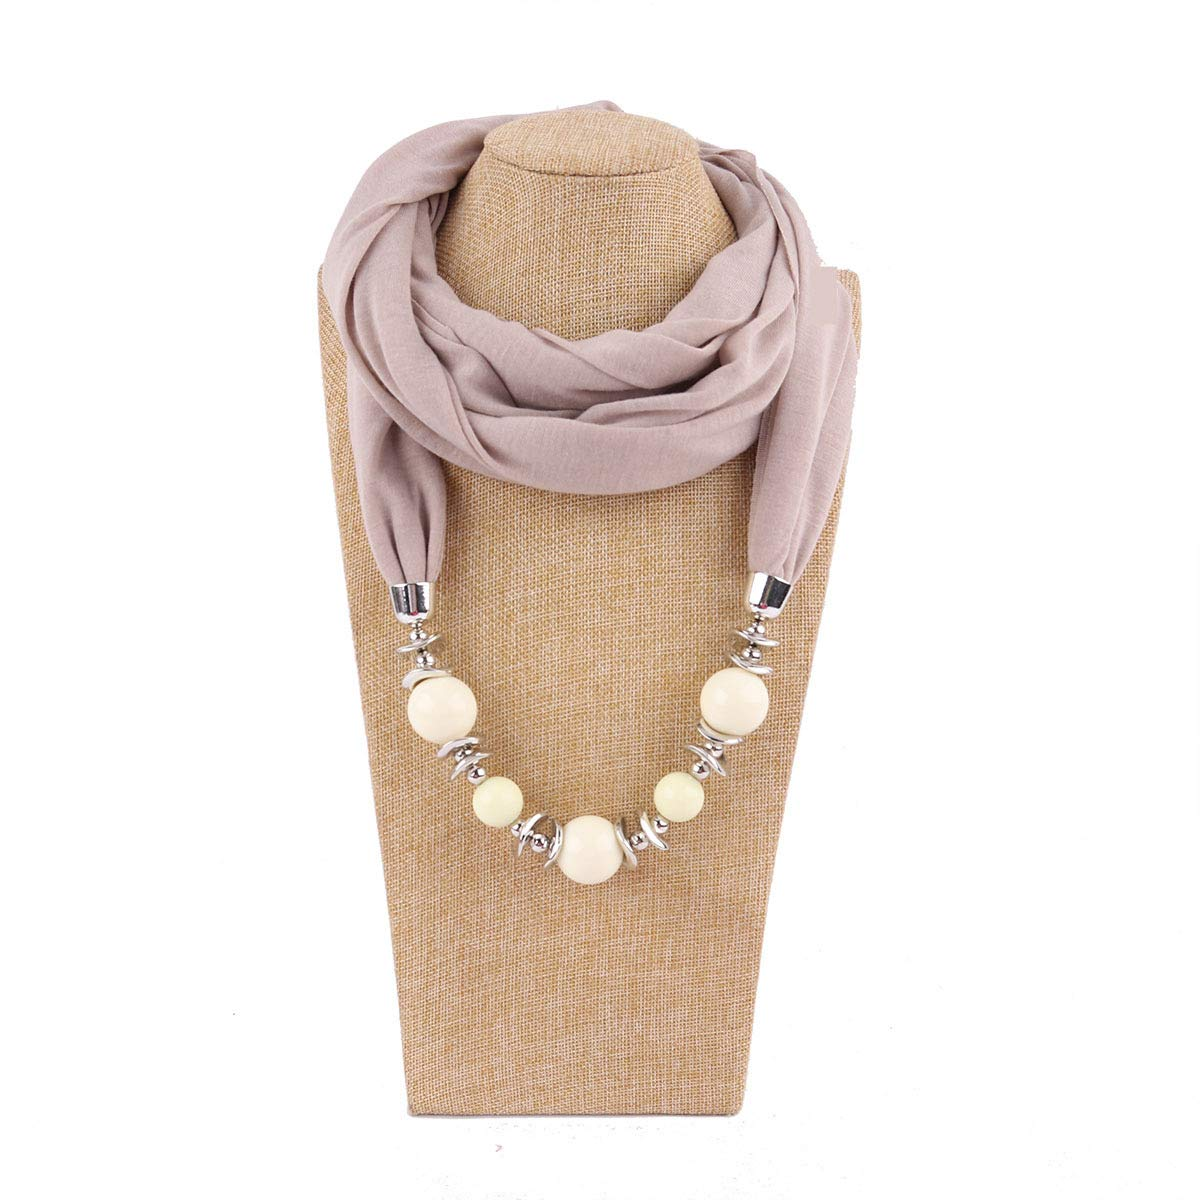 Fasbys Classic Style Chiffon Necklace Sash Scarf with Jewelry Pendant (Brown 8)